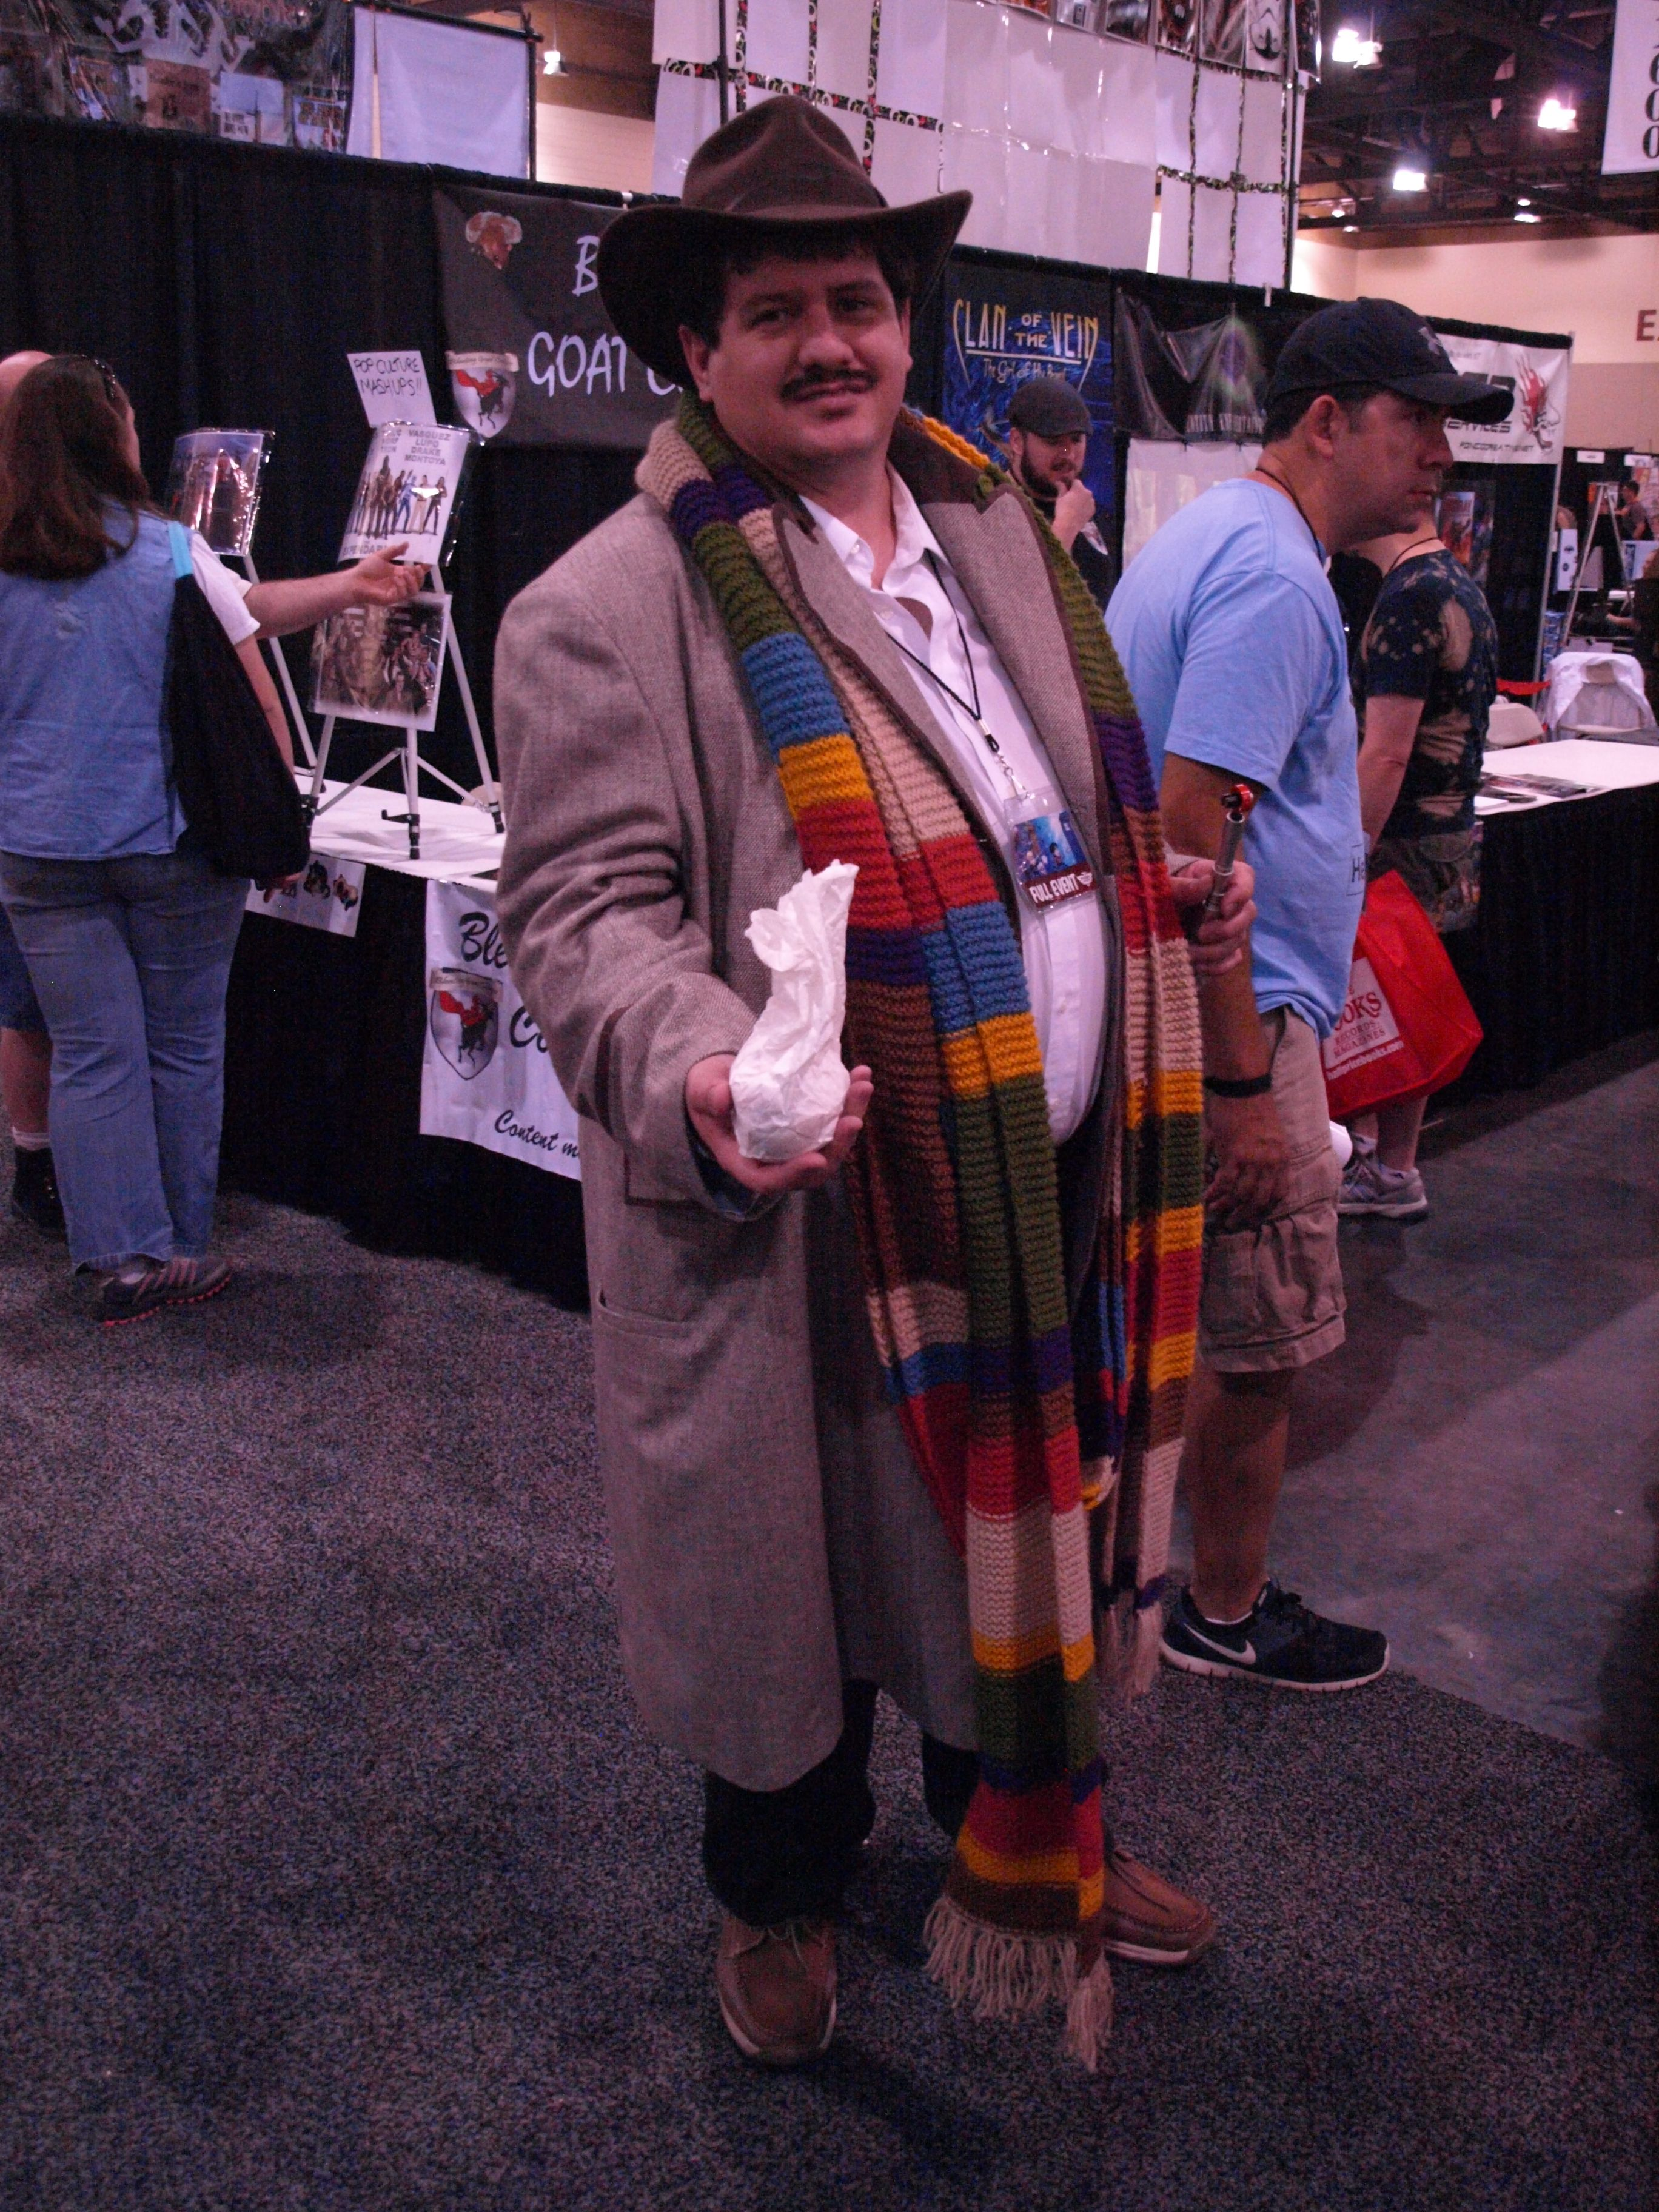 The 4th Doctor (and his jelly babies)... Phoenix Comicon 2013